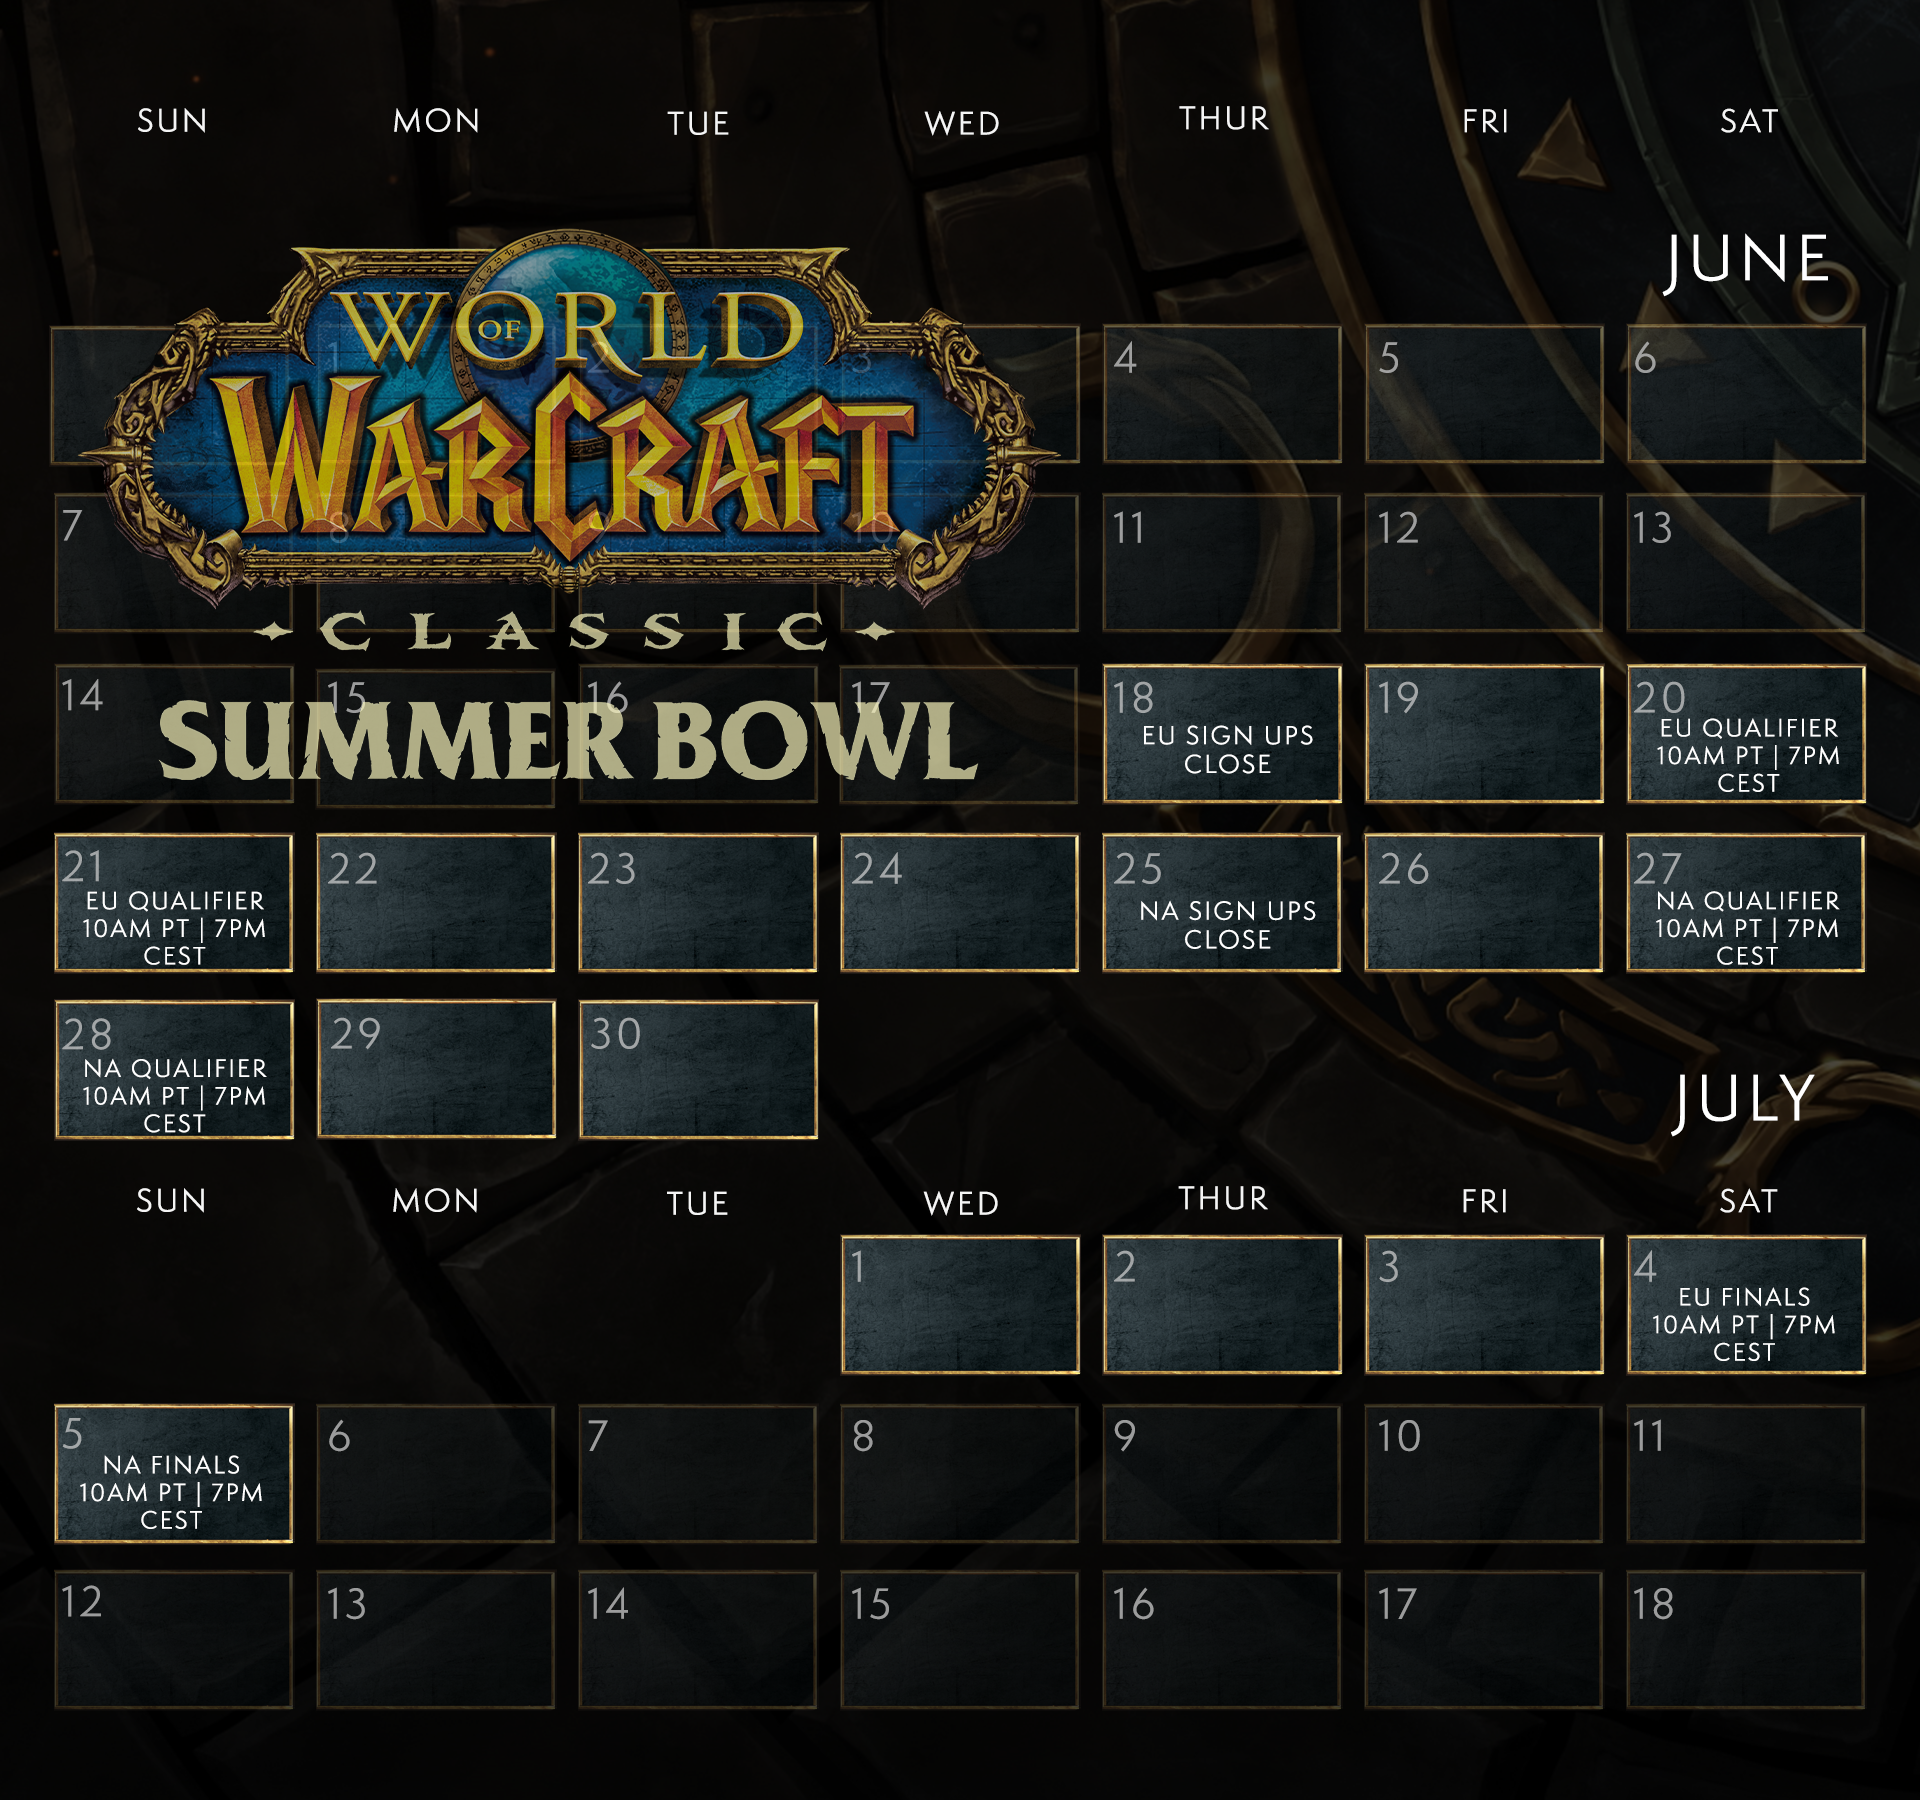 Schedule of the Summer Bowl: EU Sign ups close 6/18, EU Qualifiers 6/20-6/21, NA Sign ups close 6/25, NA Qualifiers 6/27-6/28, EU Finals 7/4, NA Finals 7/5